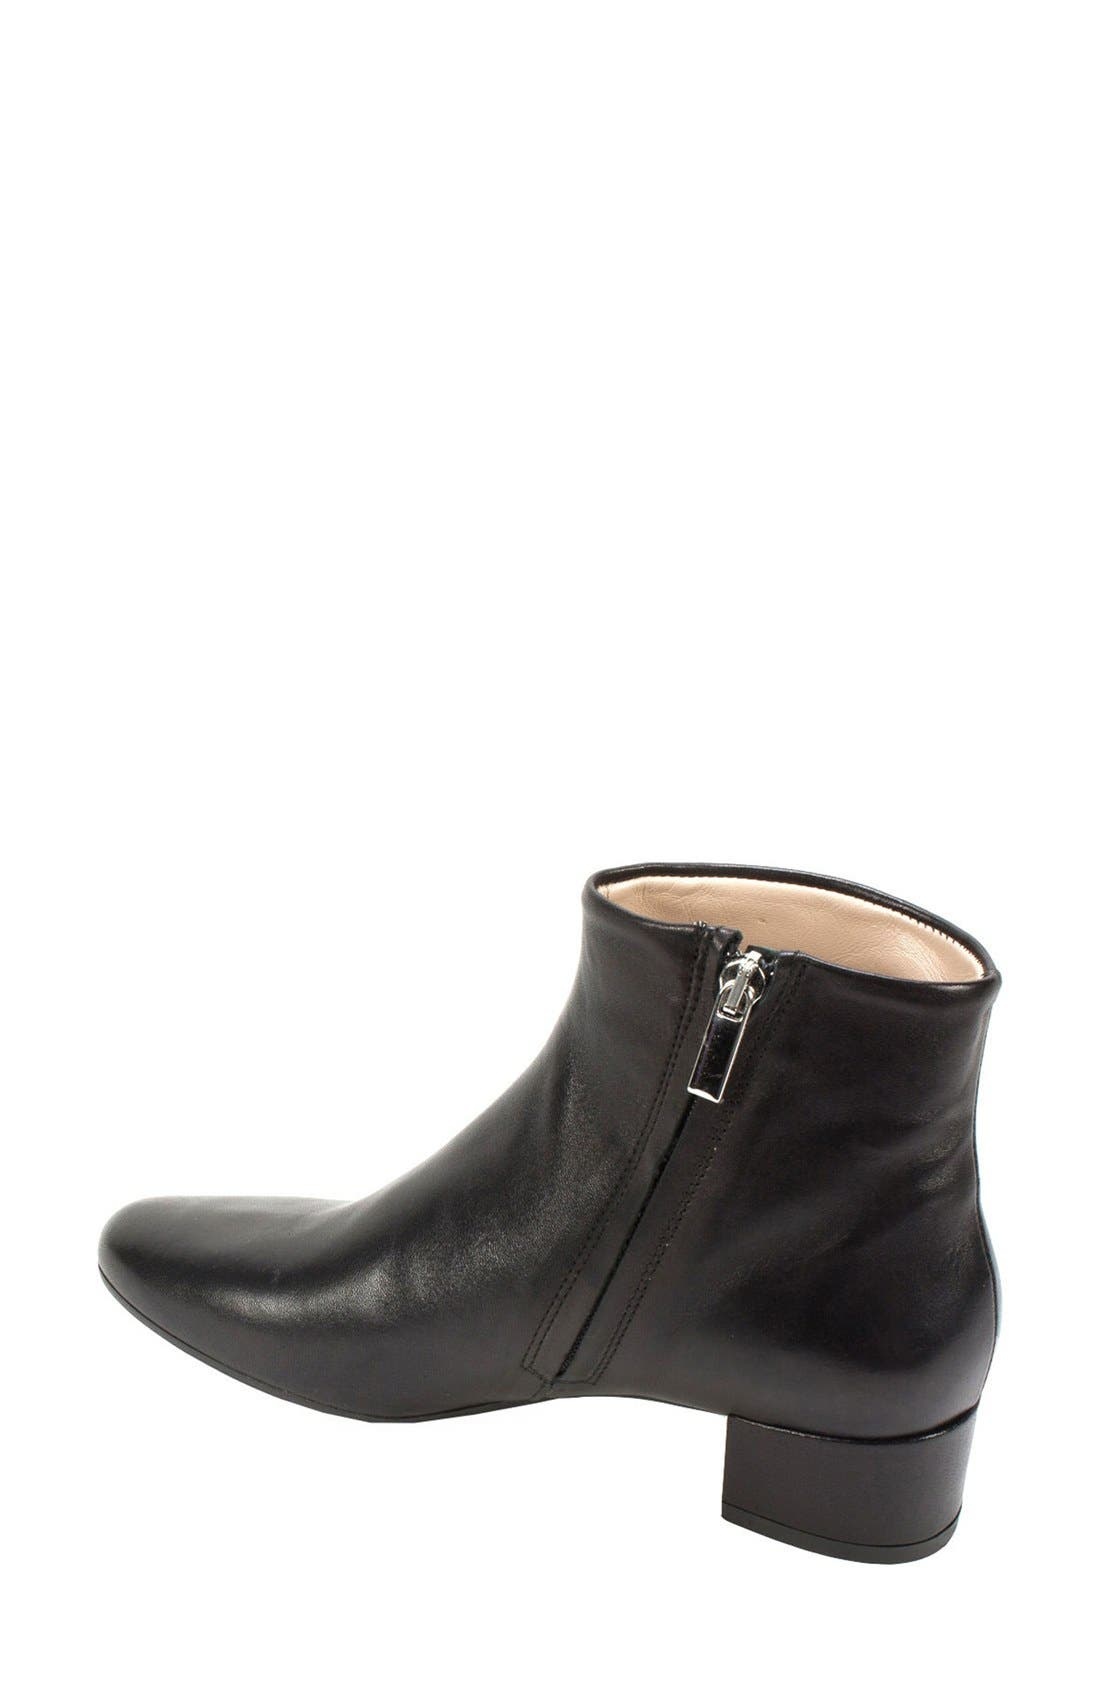 Alternate Image 2  - Summit Jordie Block Heel Bootie (Women)